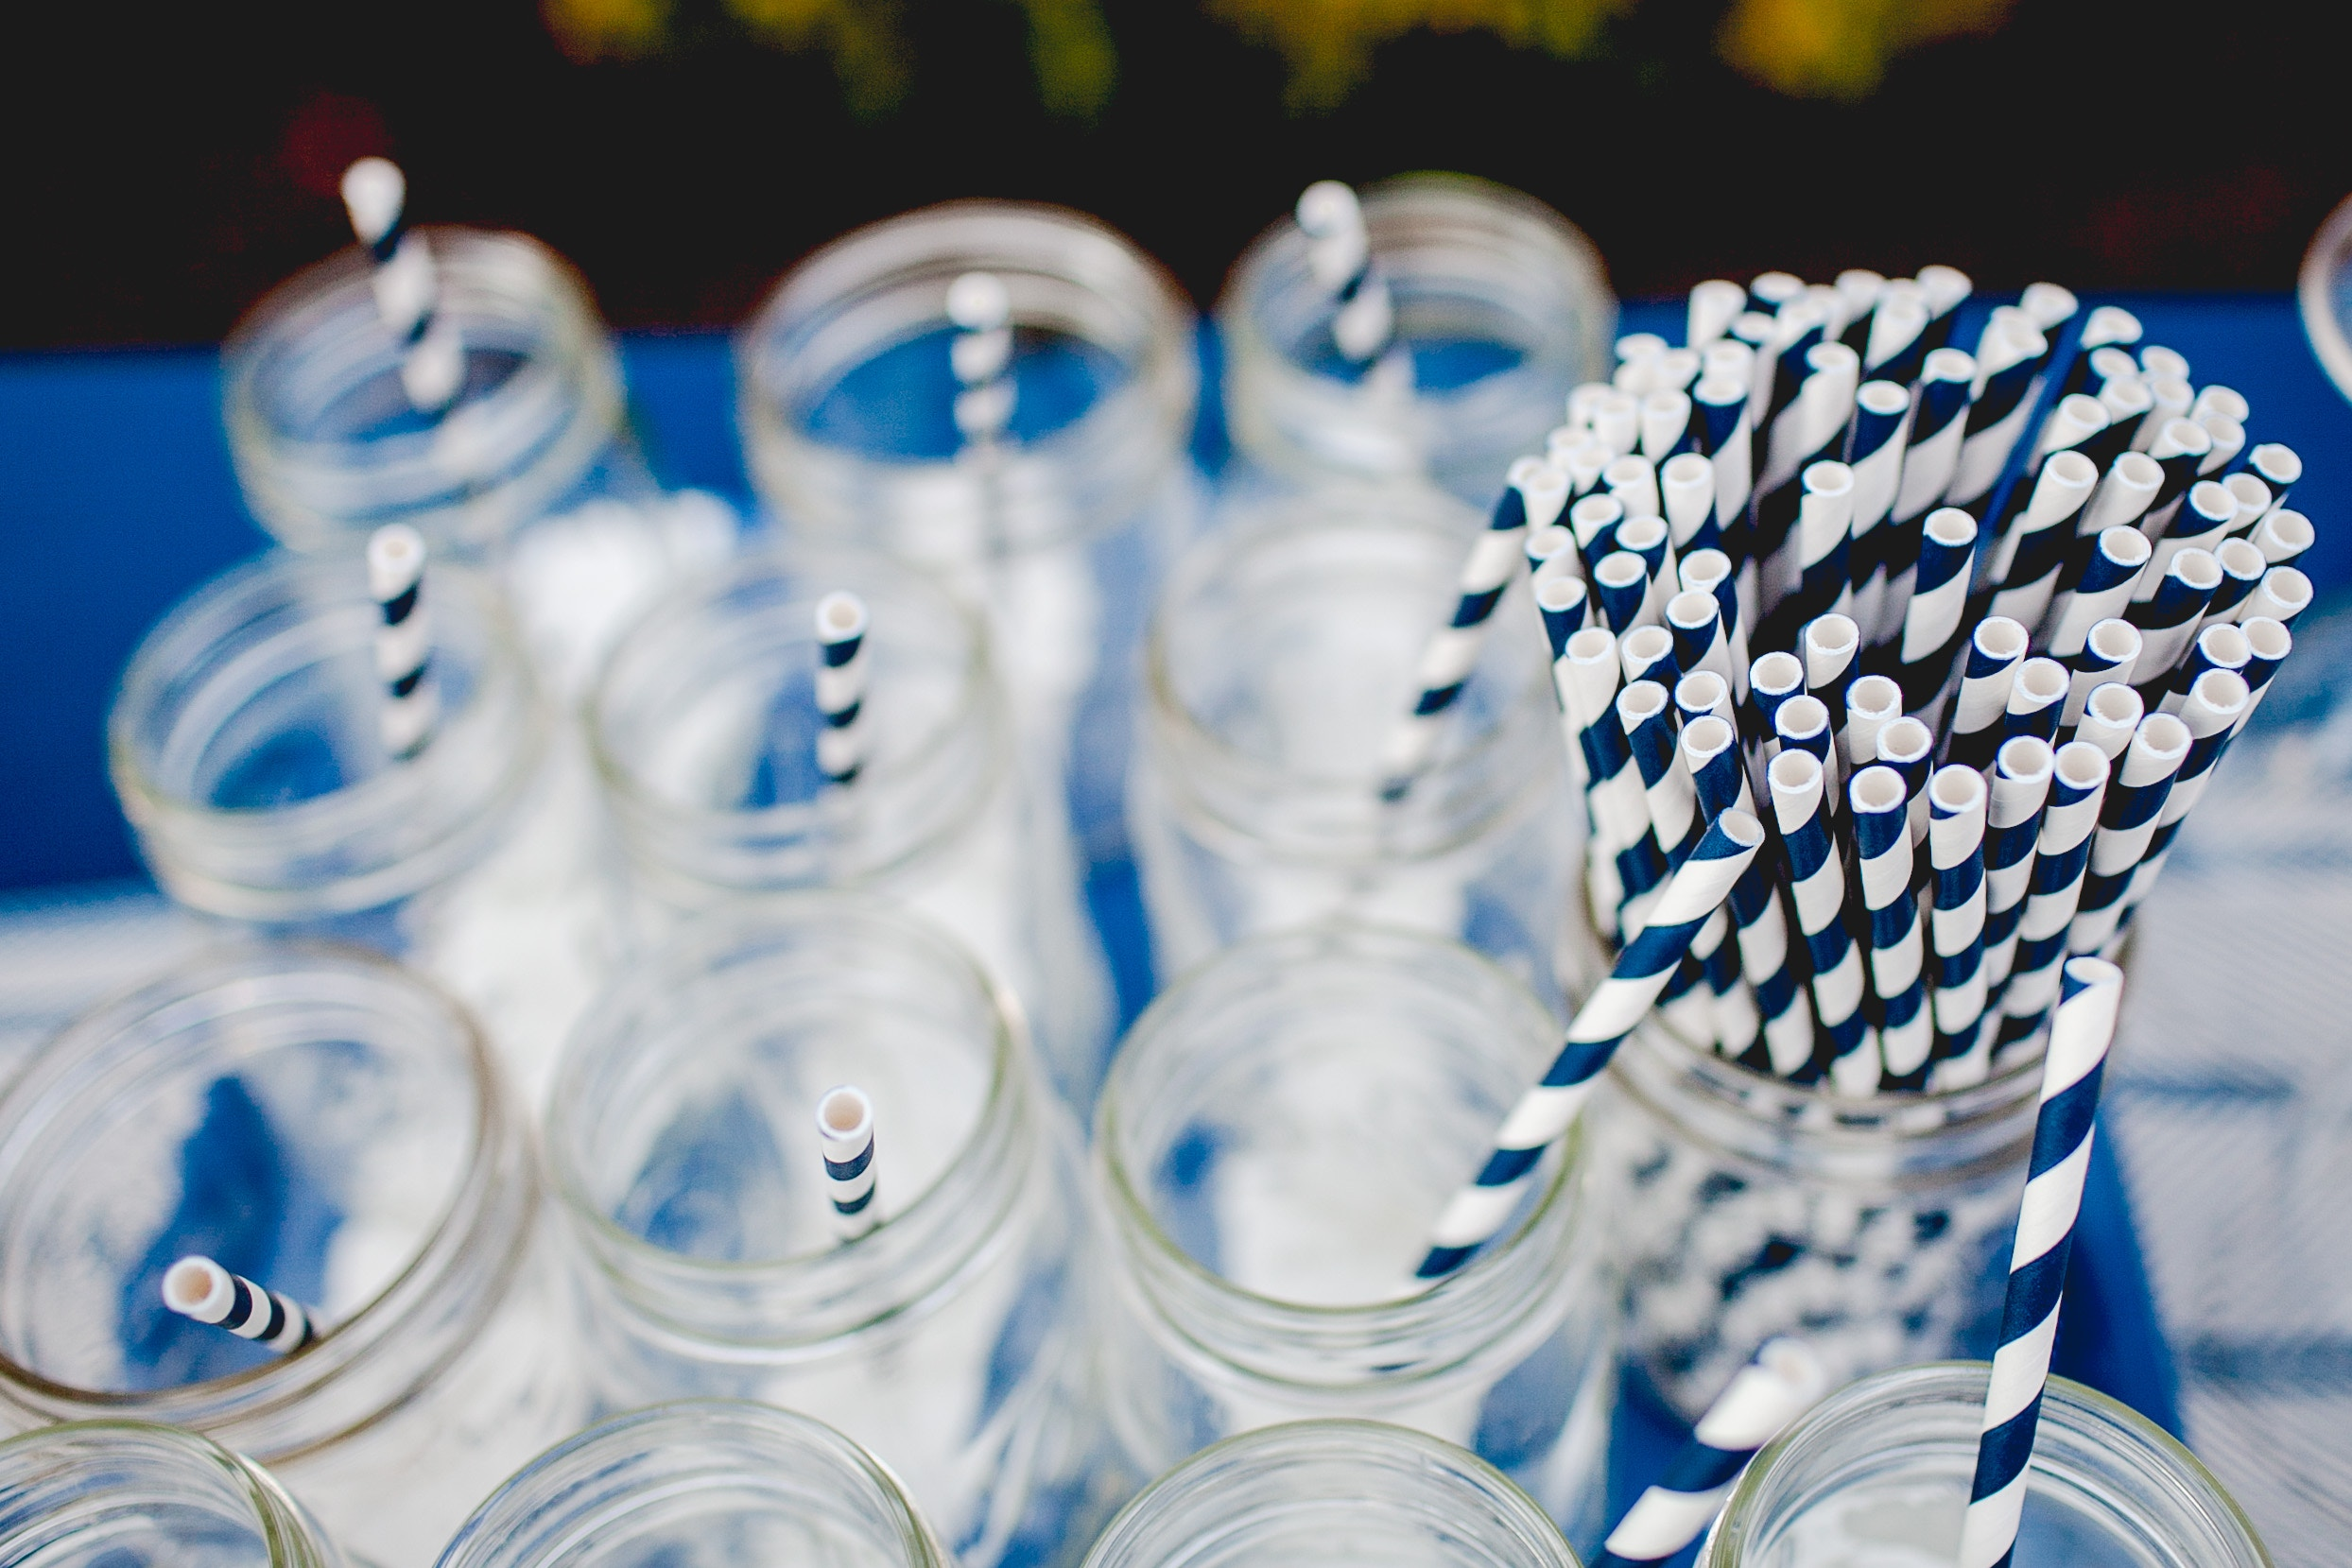 If your business is a restaurant consider switching to paper or stainless steel straws! Photo by  Danielle MacInnes  on  Unsplash